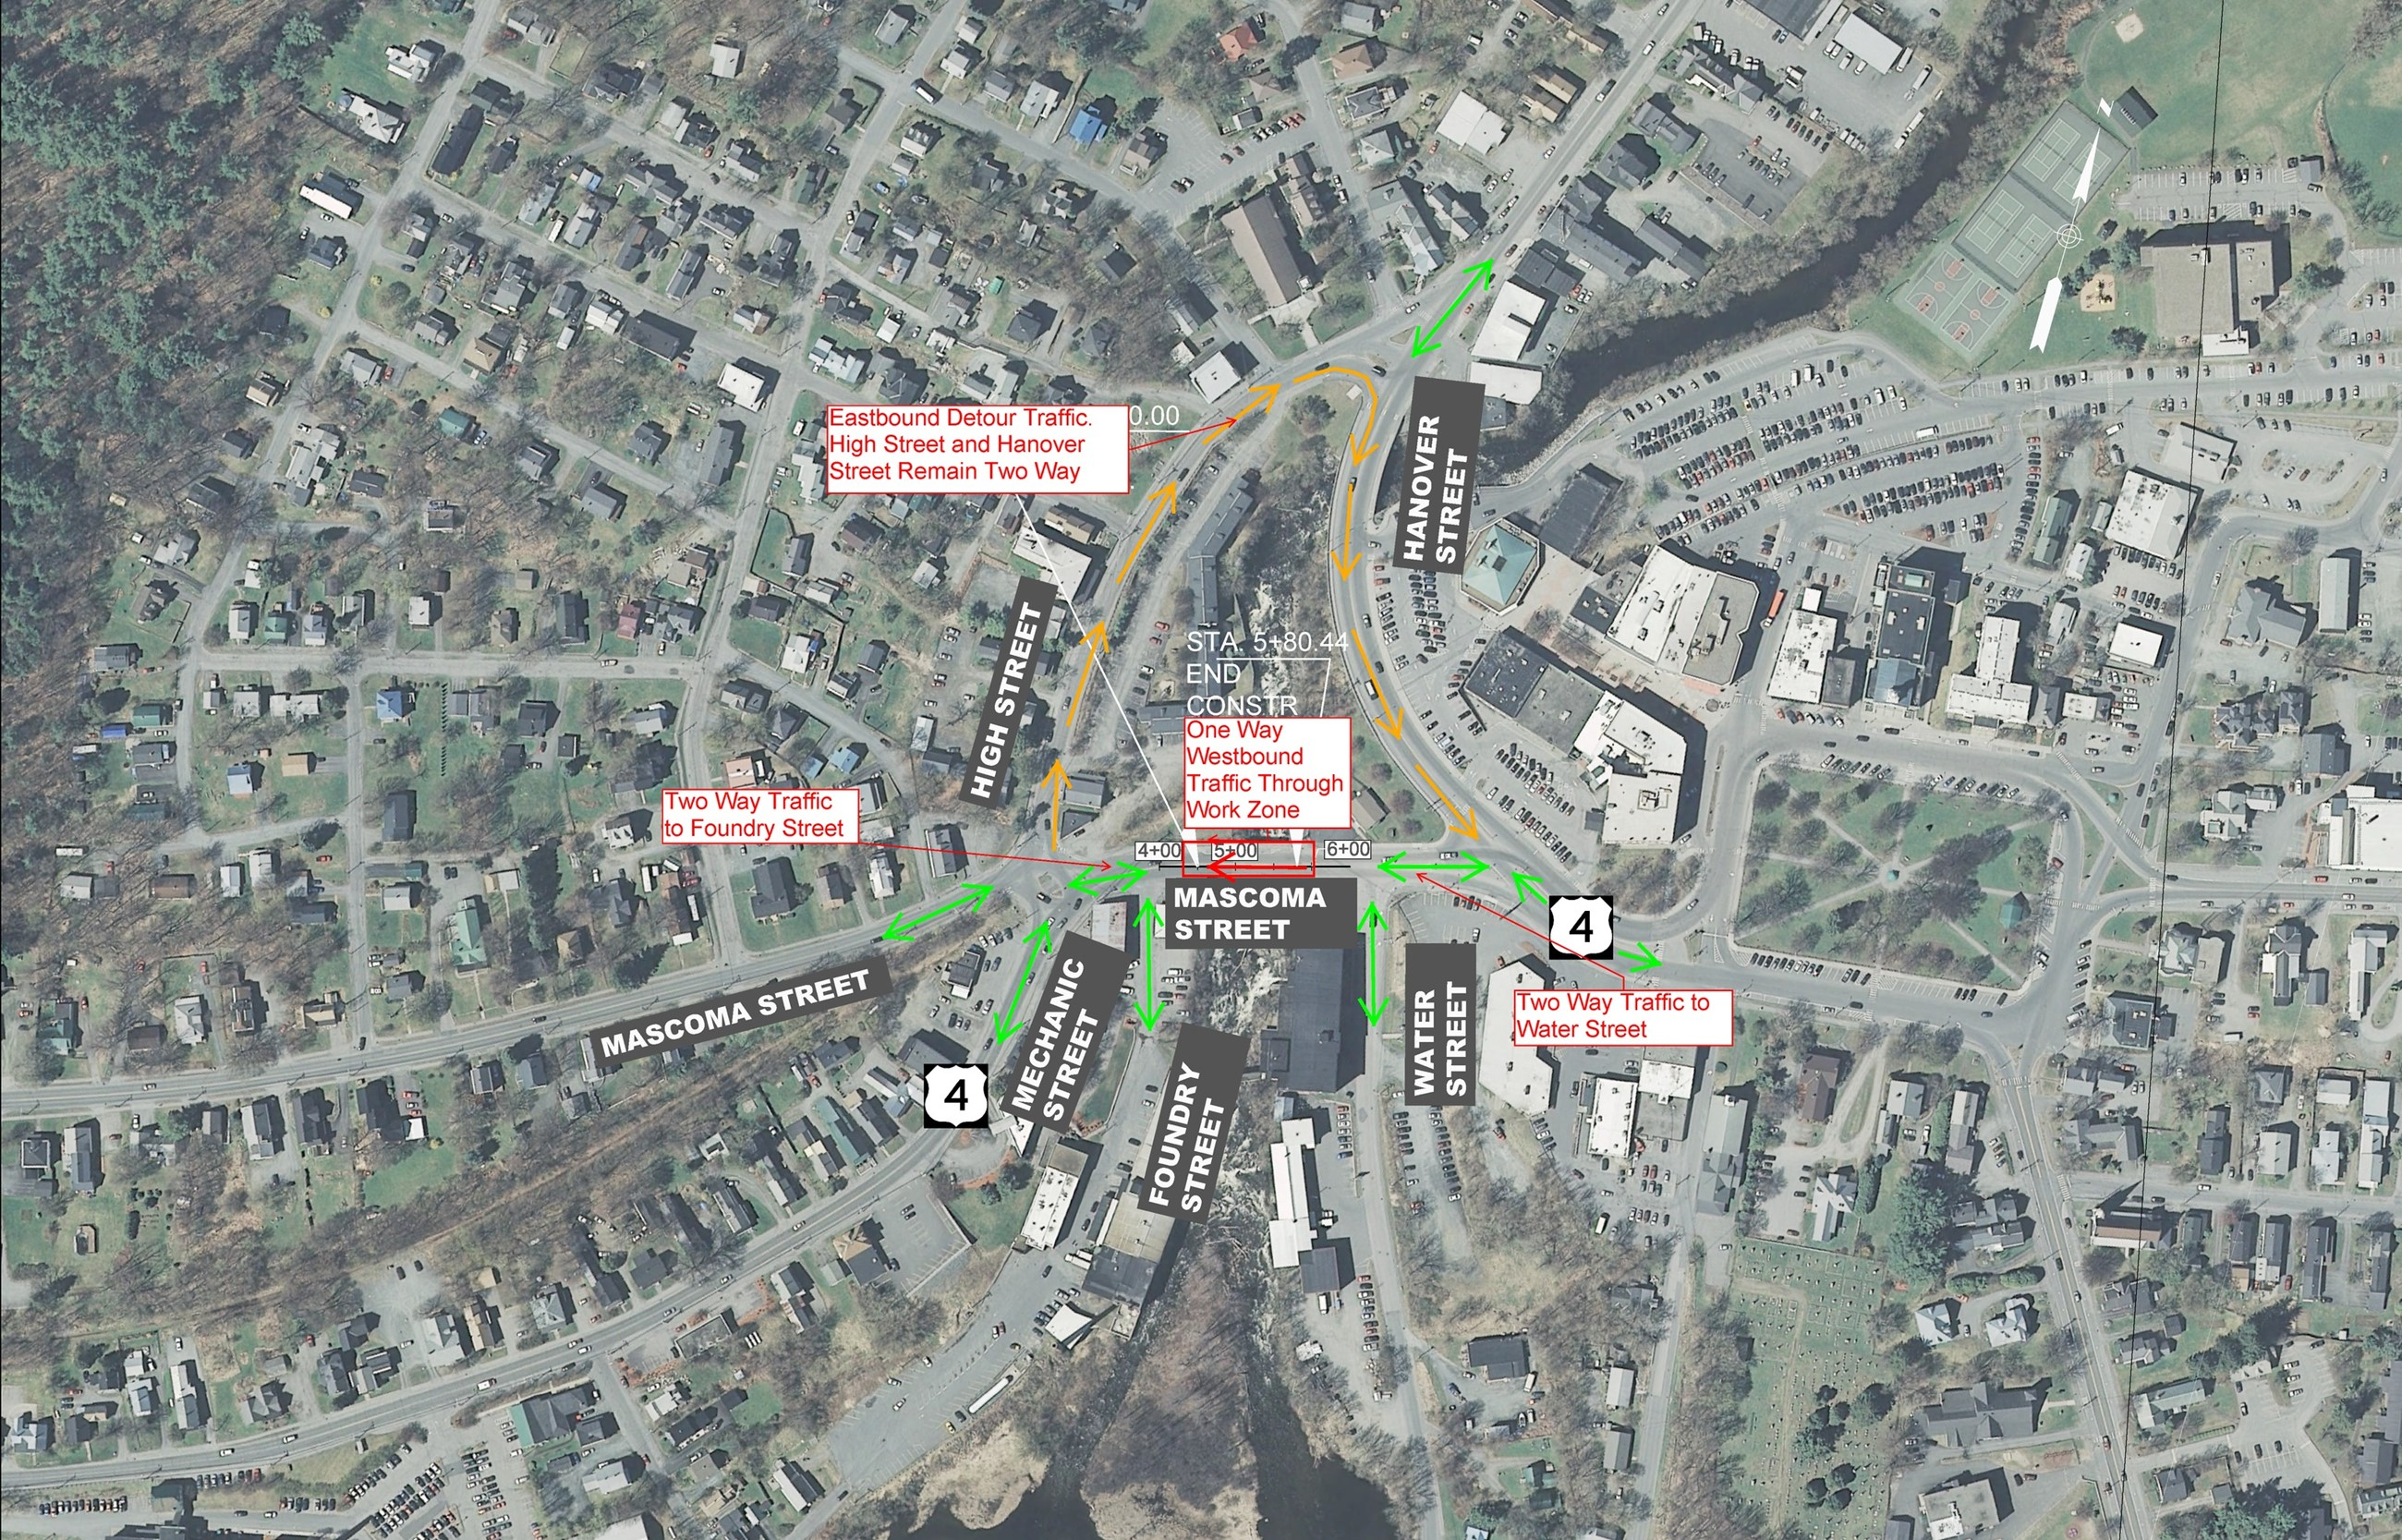 Mascoma St. Bridge Reconstruction Detour Map